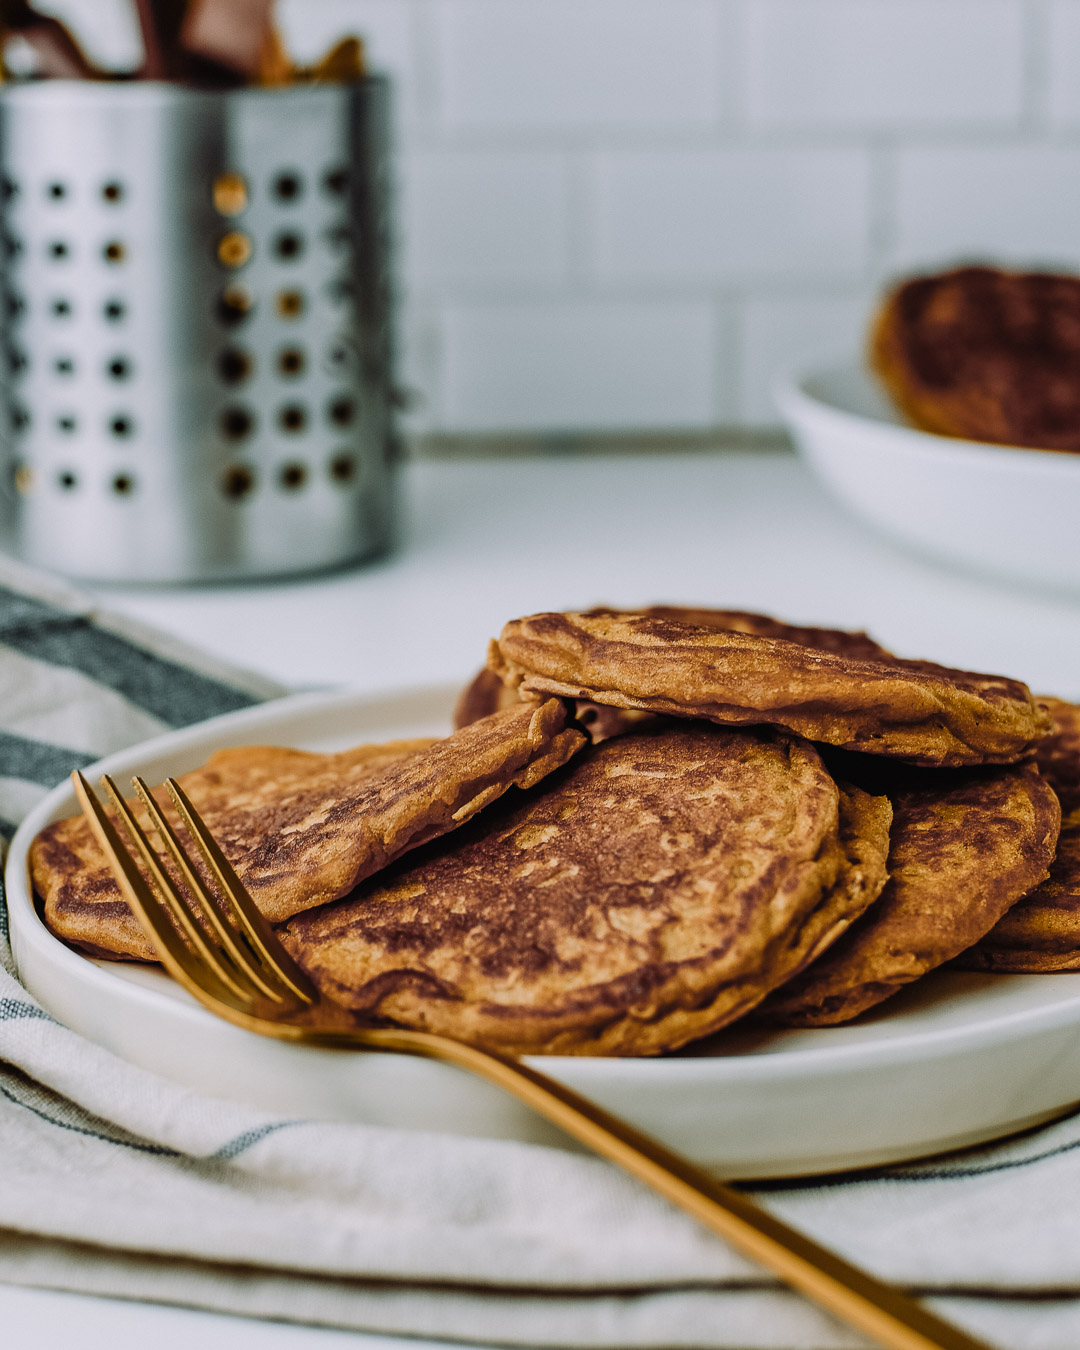 Oatmeal pancakes on a white plate with a fork, sitting on top of a kitchen towel on a white table.